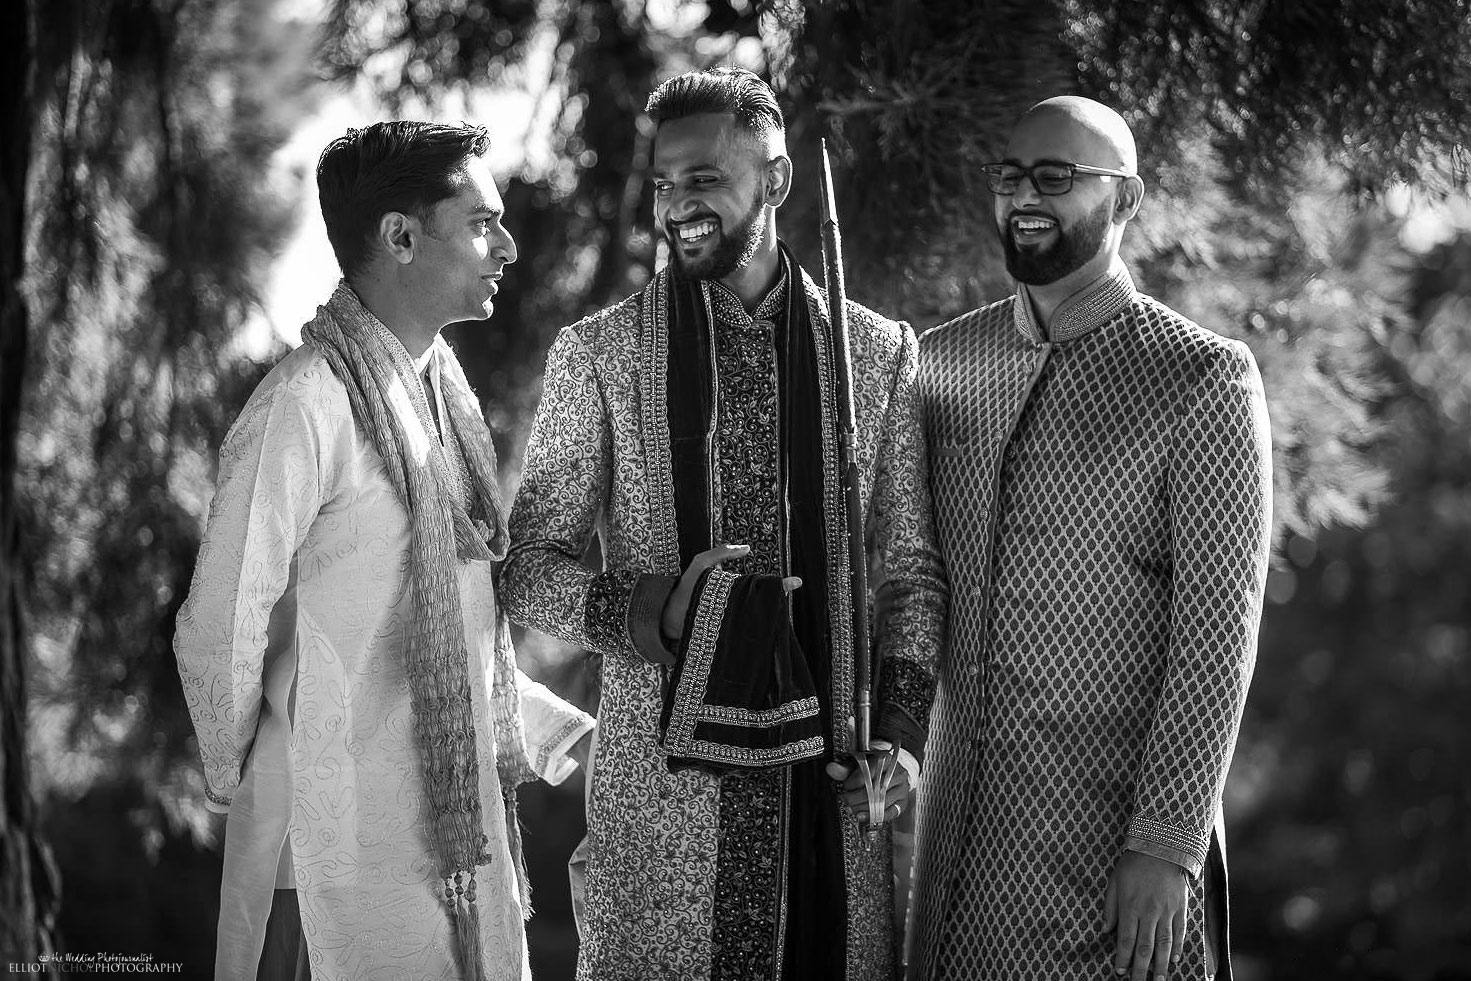 Indian Groom with his best friends before going to his Hindu wedding. Photo by North East based wedding photographer Elliot Nichol.